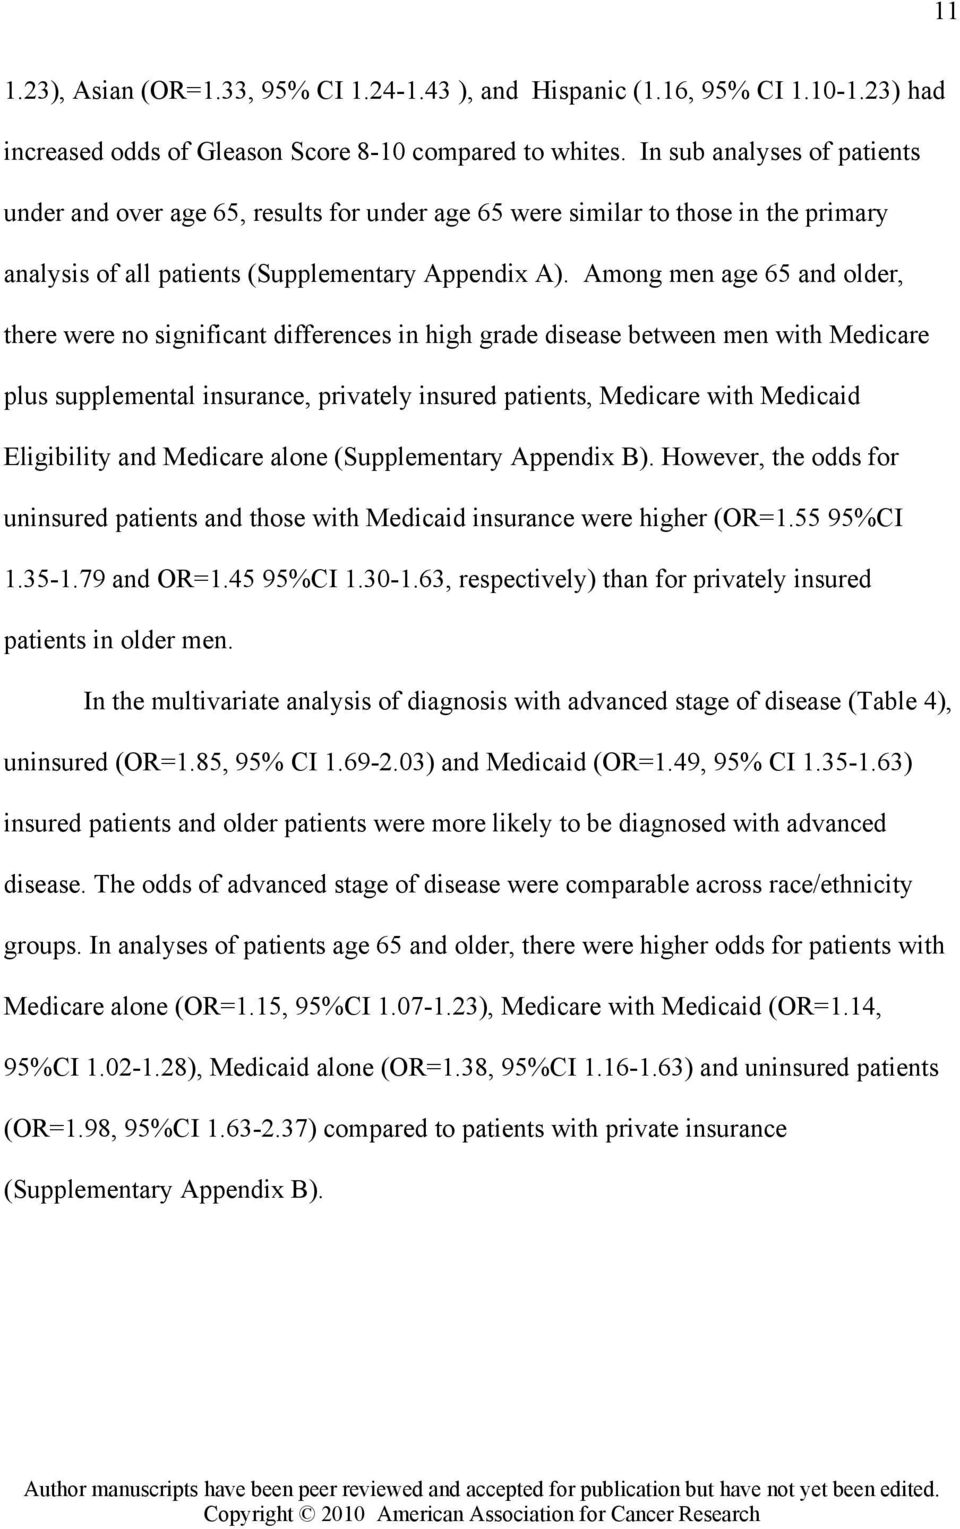 Among men age 65 and older, there were no significant differences in high grade disease between men with Medicare plus supplemental insurance, privately insured patients, Medicare with Medicaid